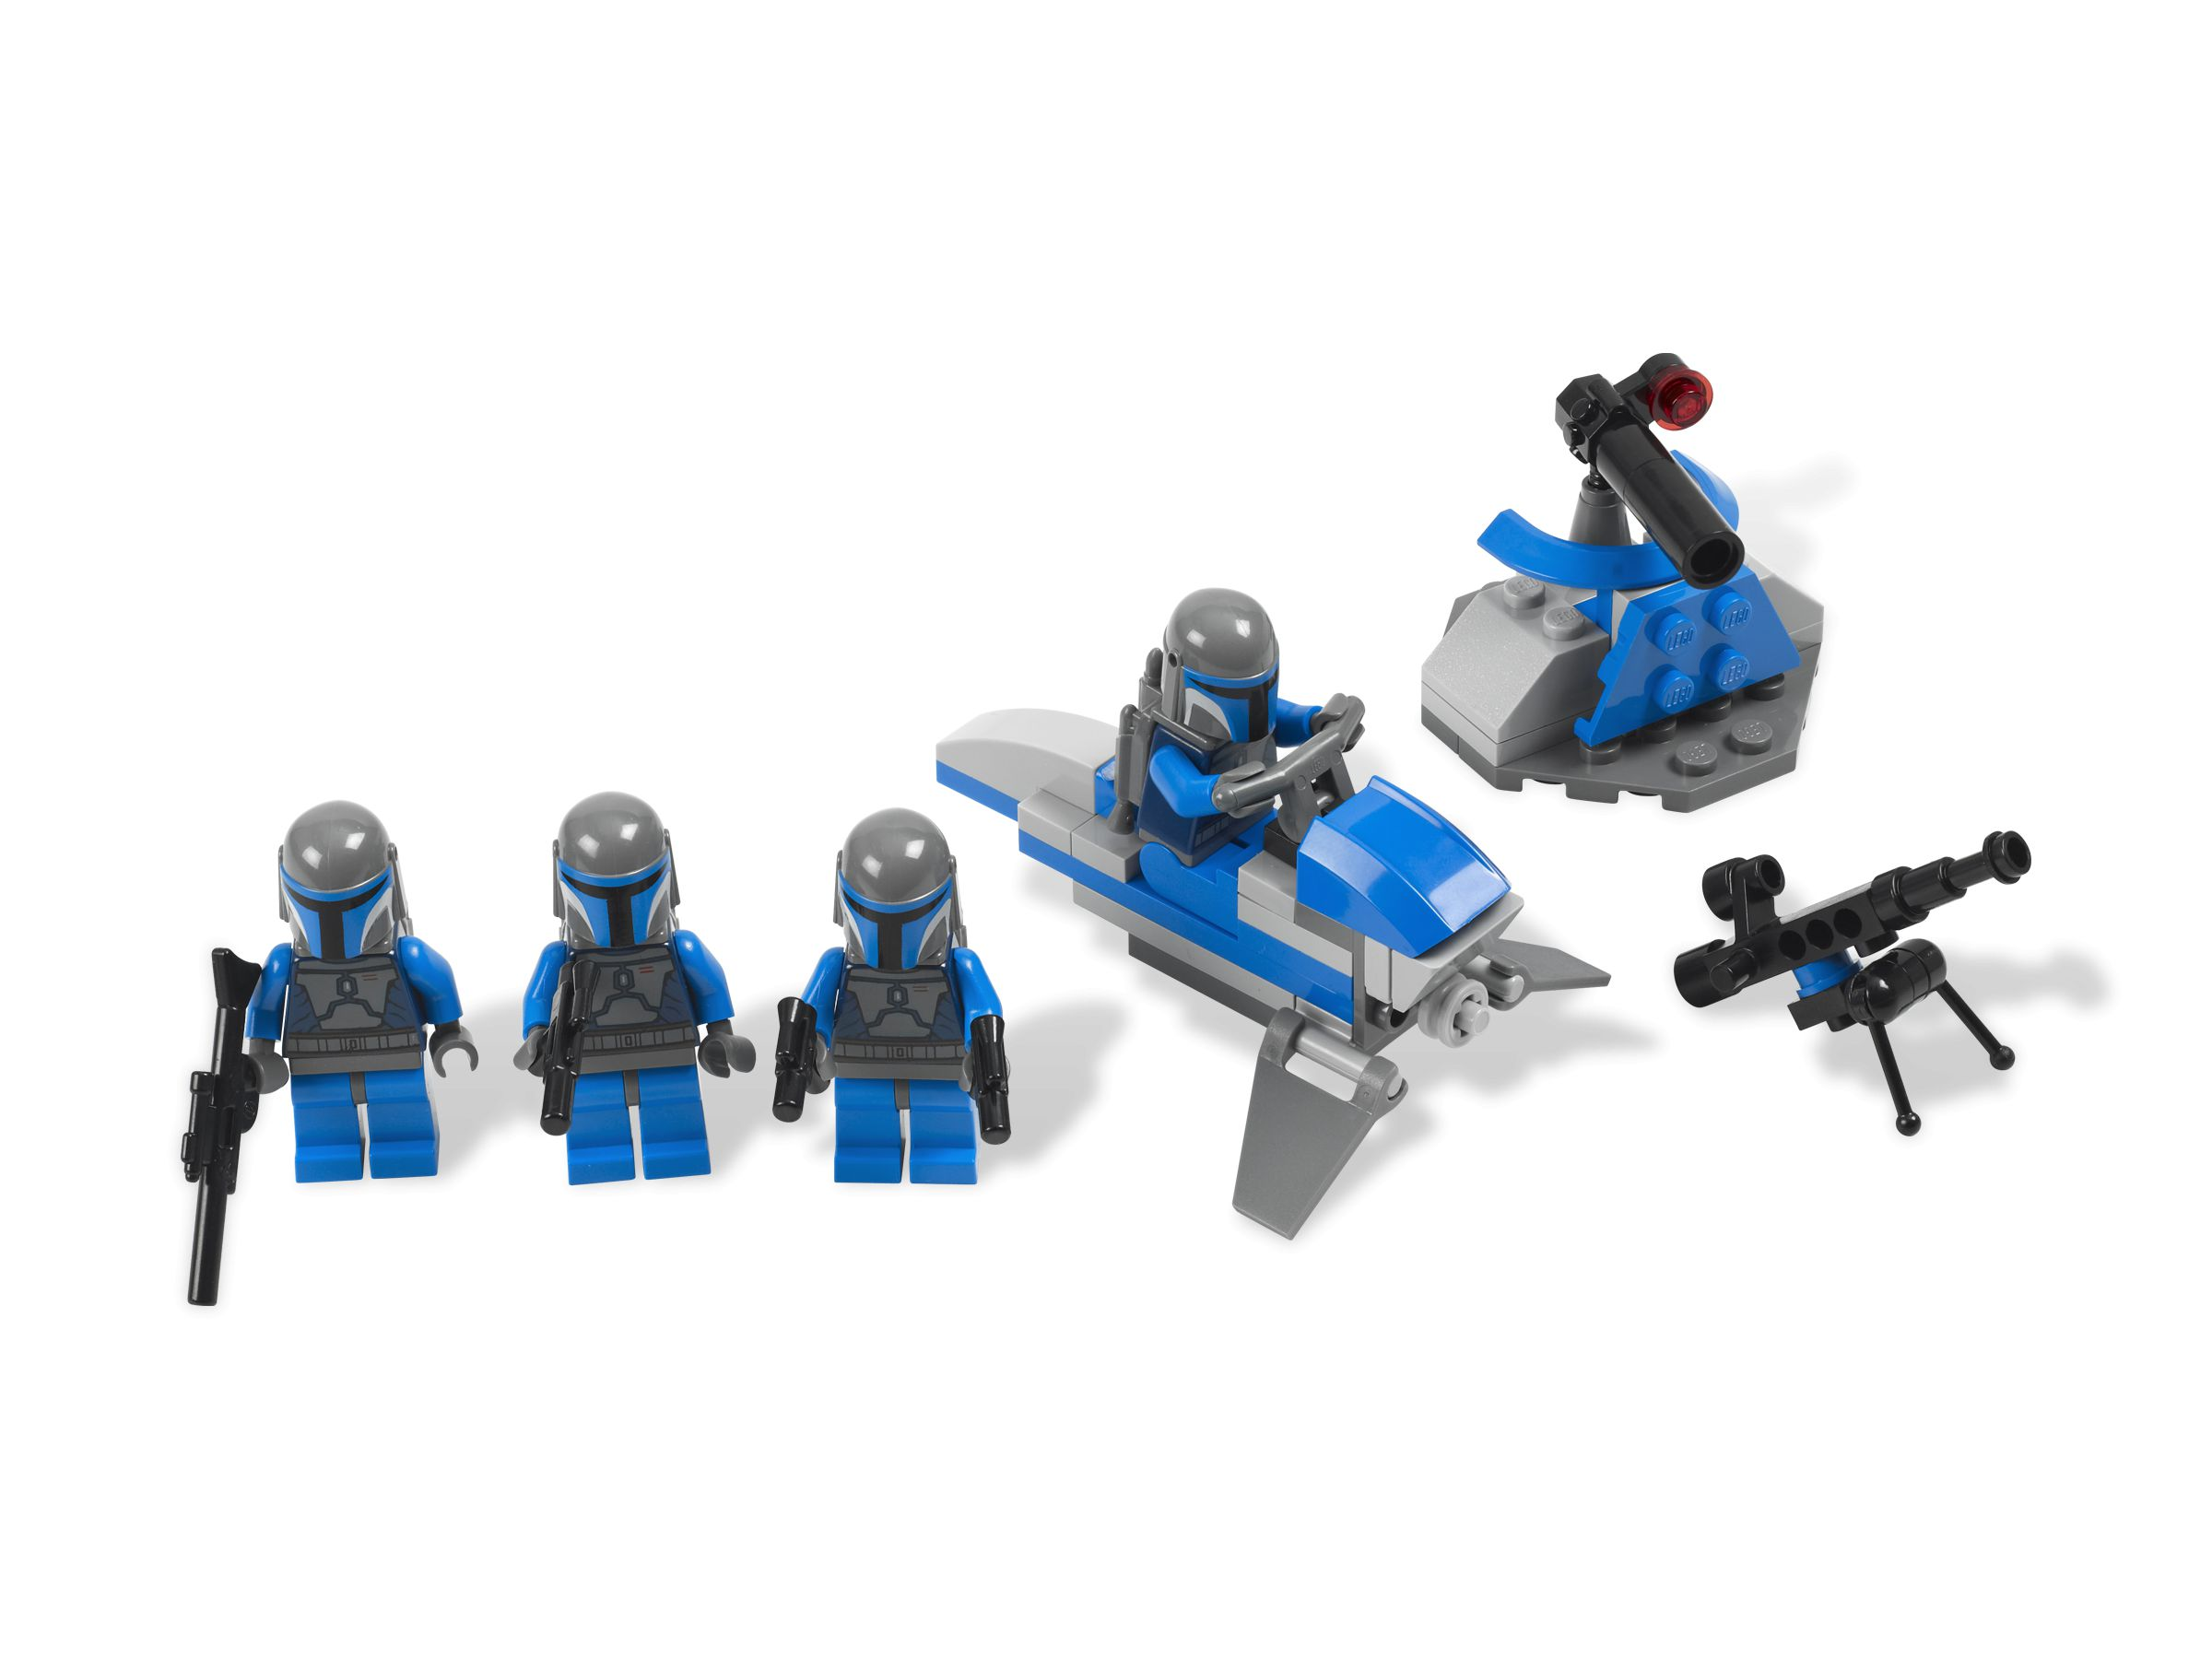 LEGO Star Wars 7914 Mandalorian Battle Pack LEGO_7914.jpg